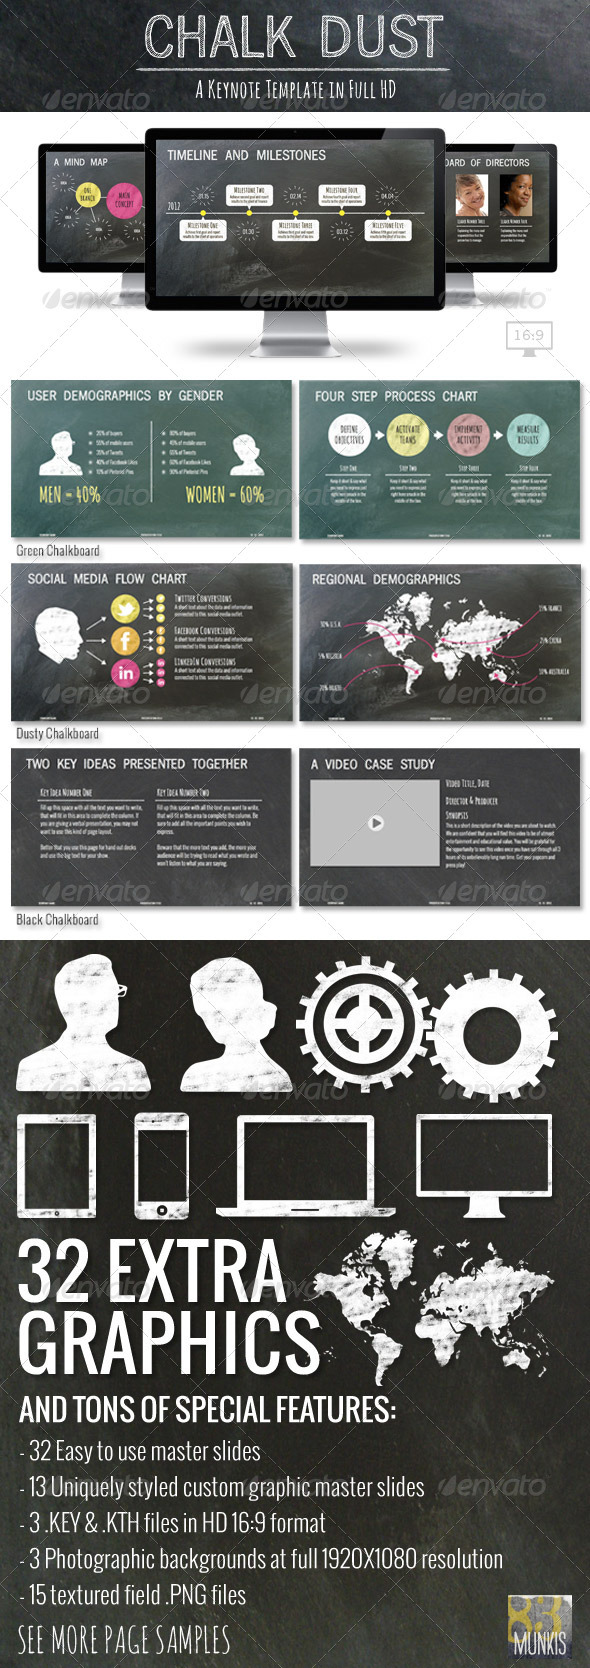 Chalk Dust Keynote Presentation Template - Creative Keynote Templates